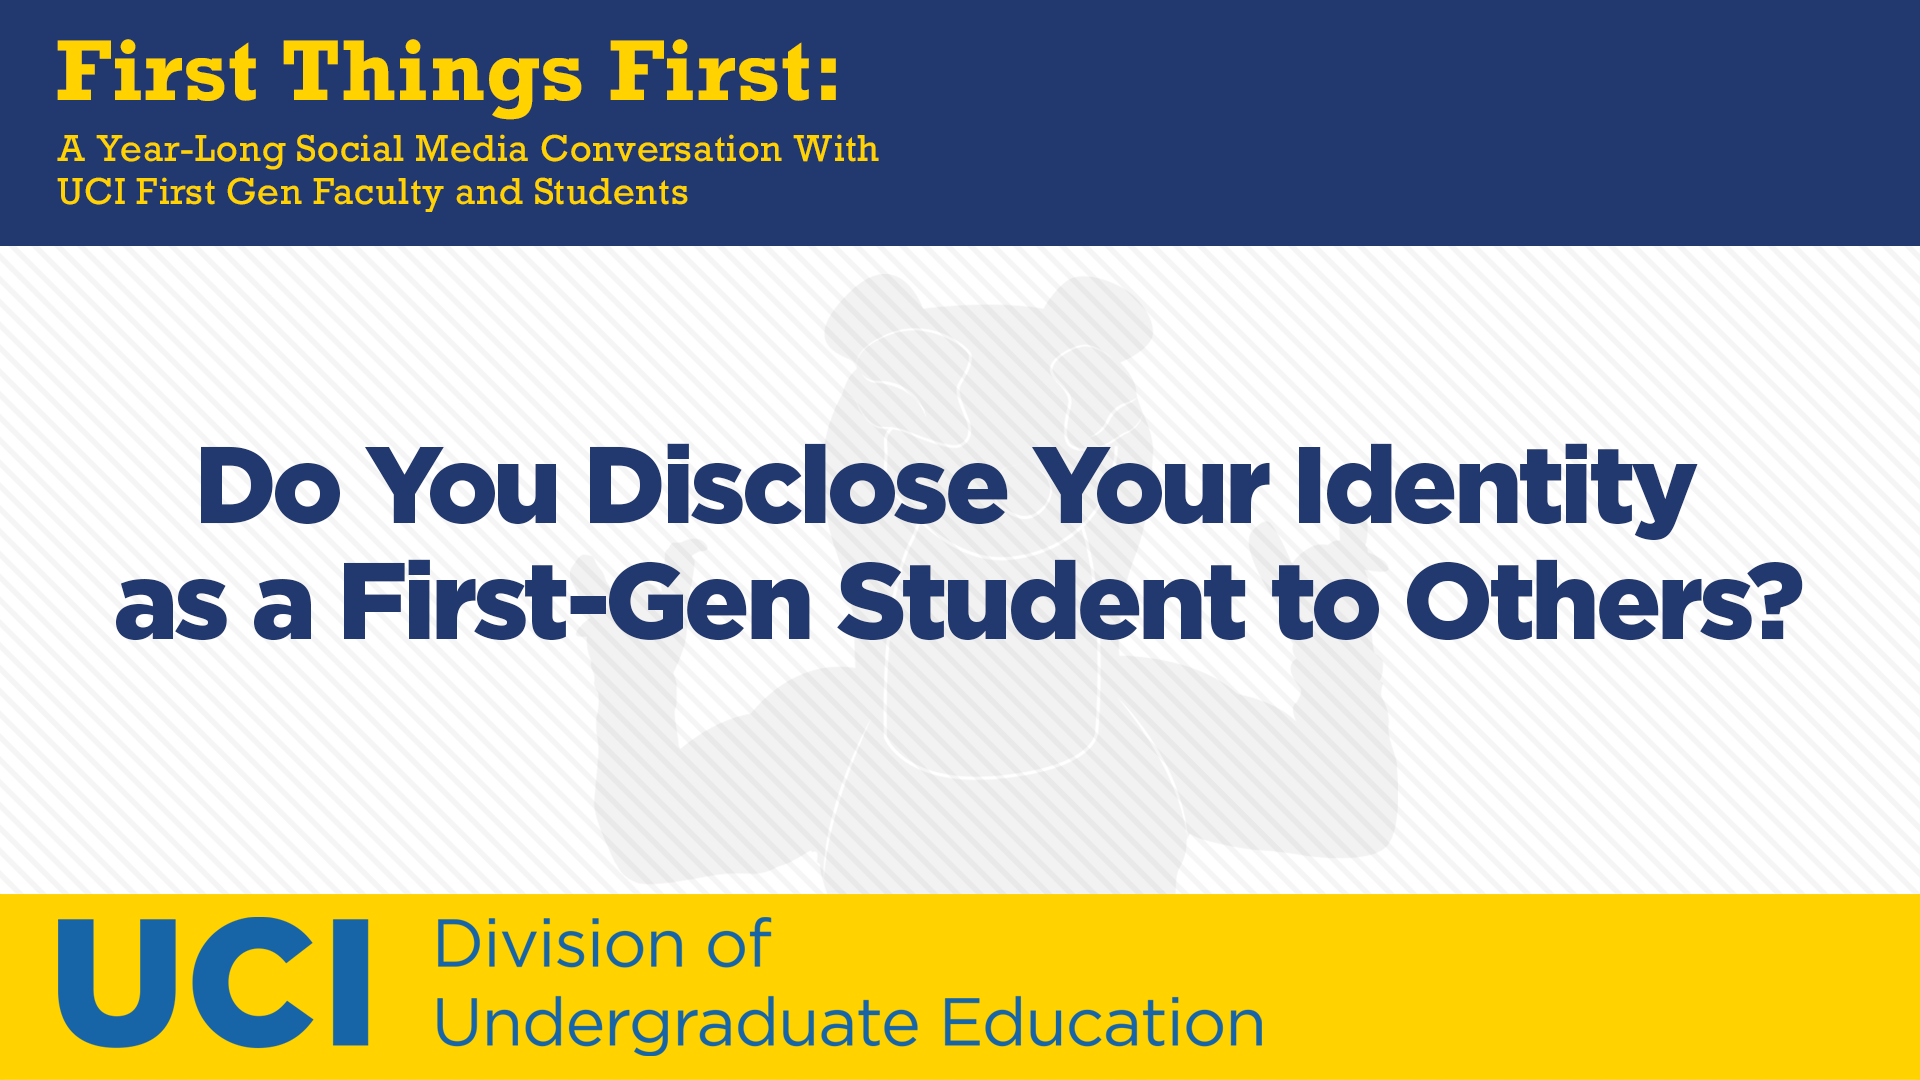 Do You Disclose Your Identity as a First-Gen Student to Others?